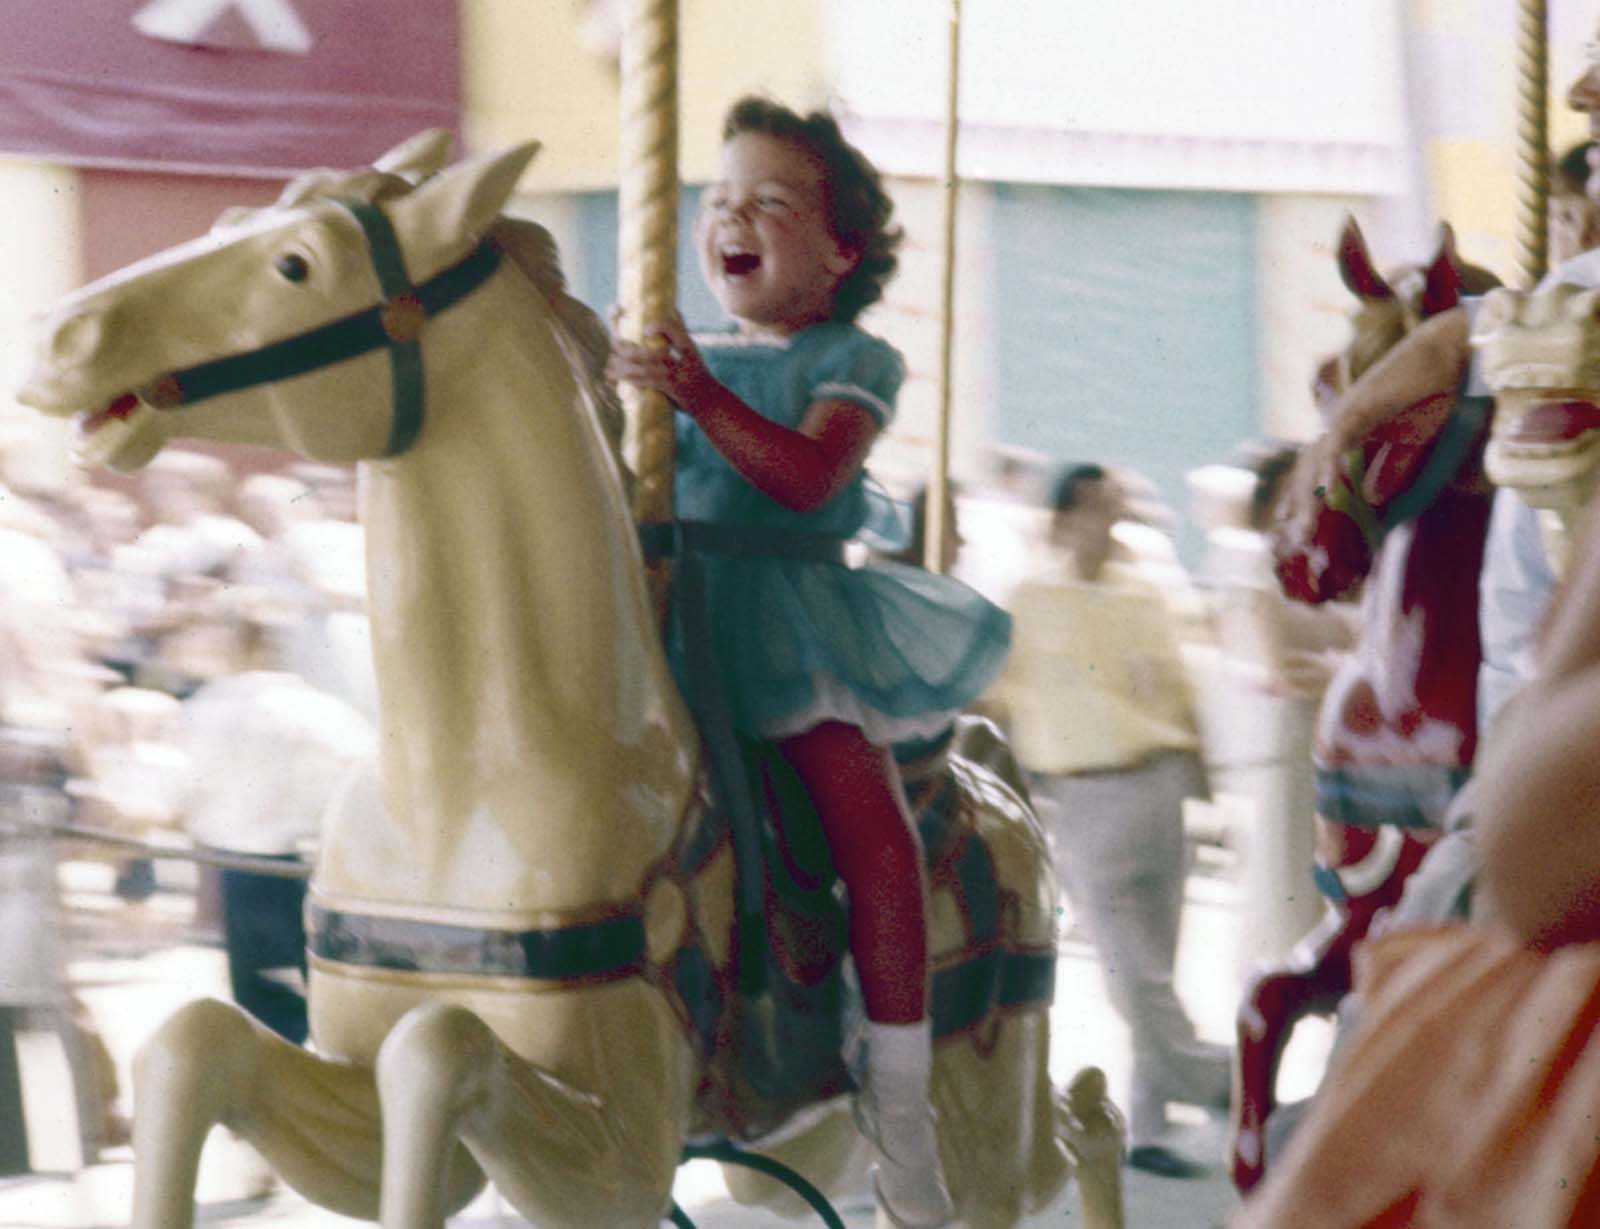 A little girl laughs with excitement while riding a carousel at Disneyland in July 1955.